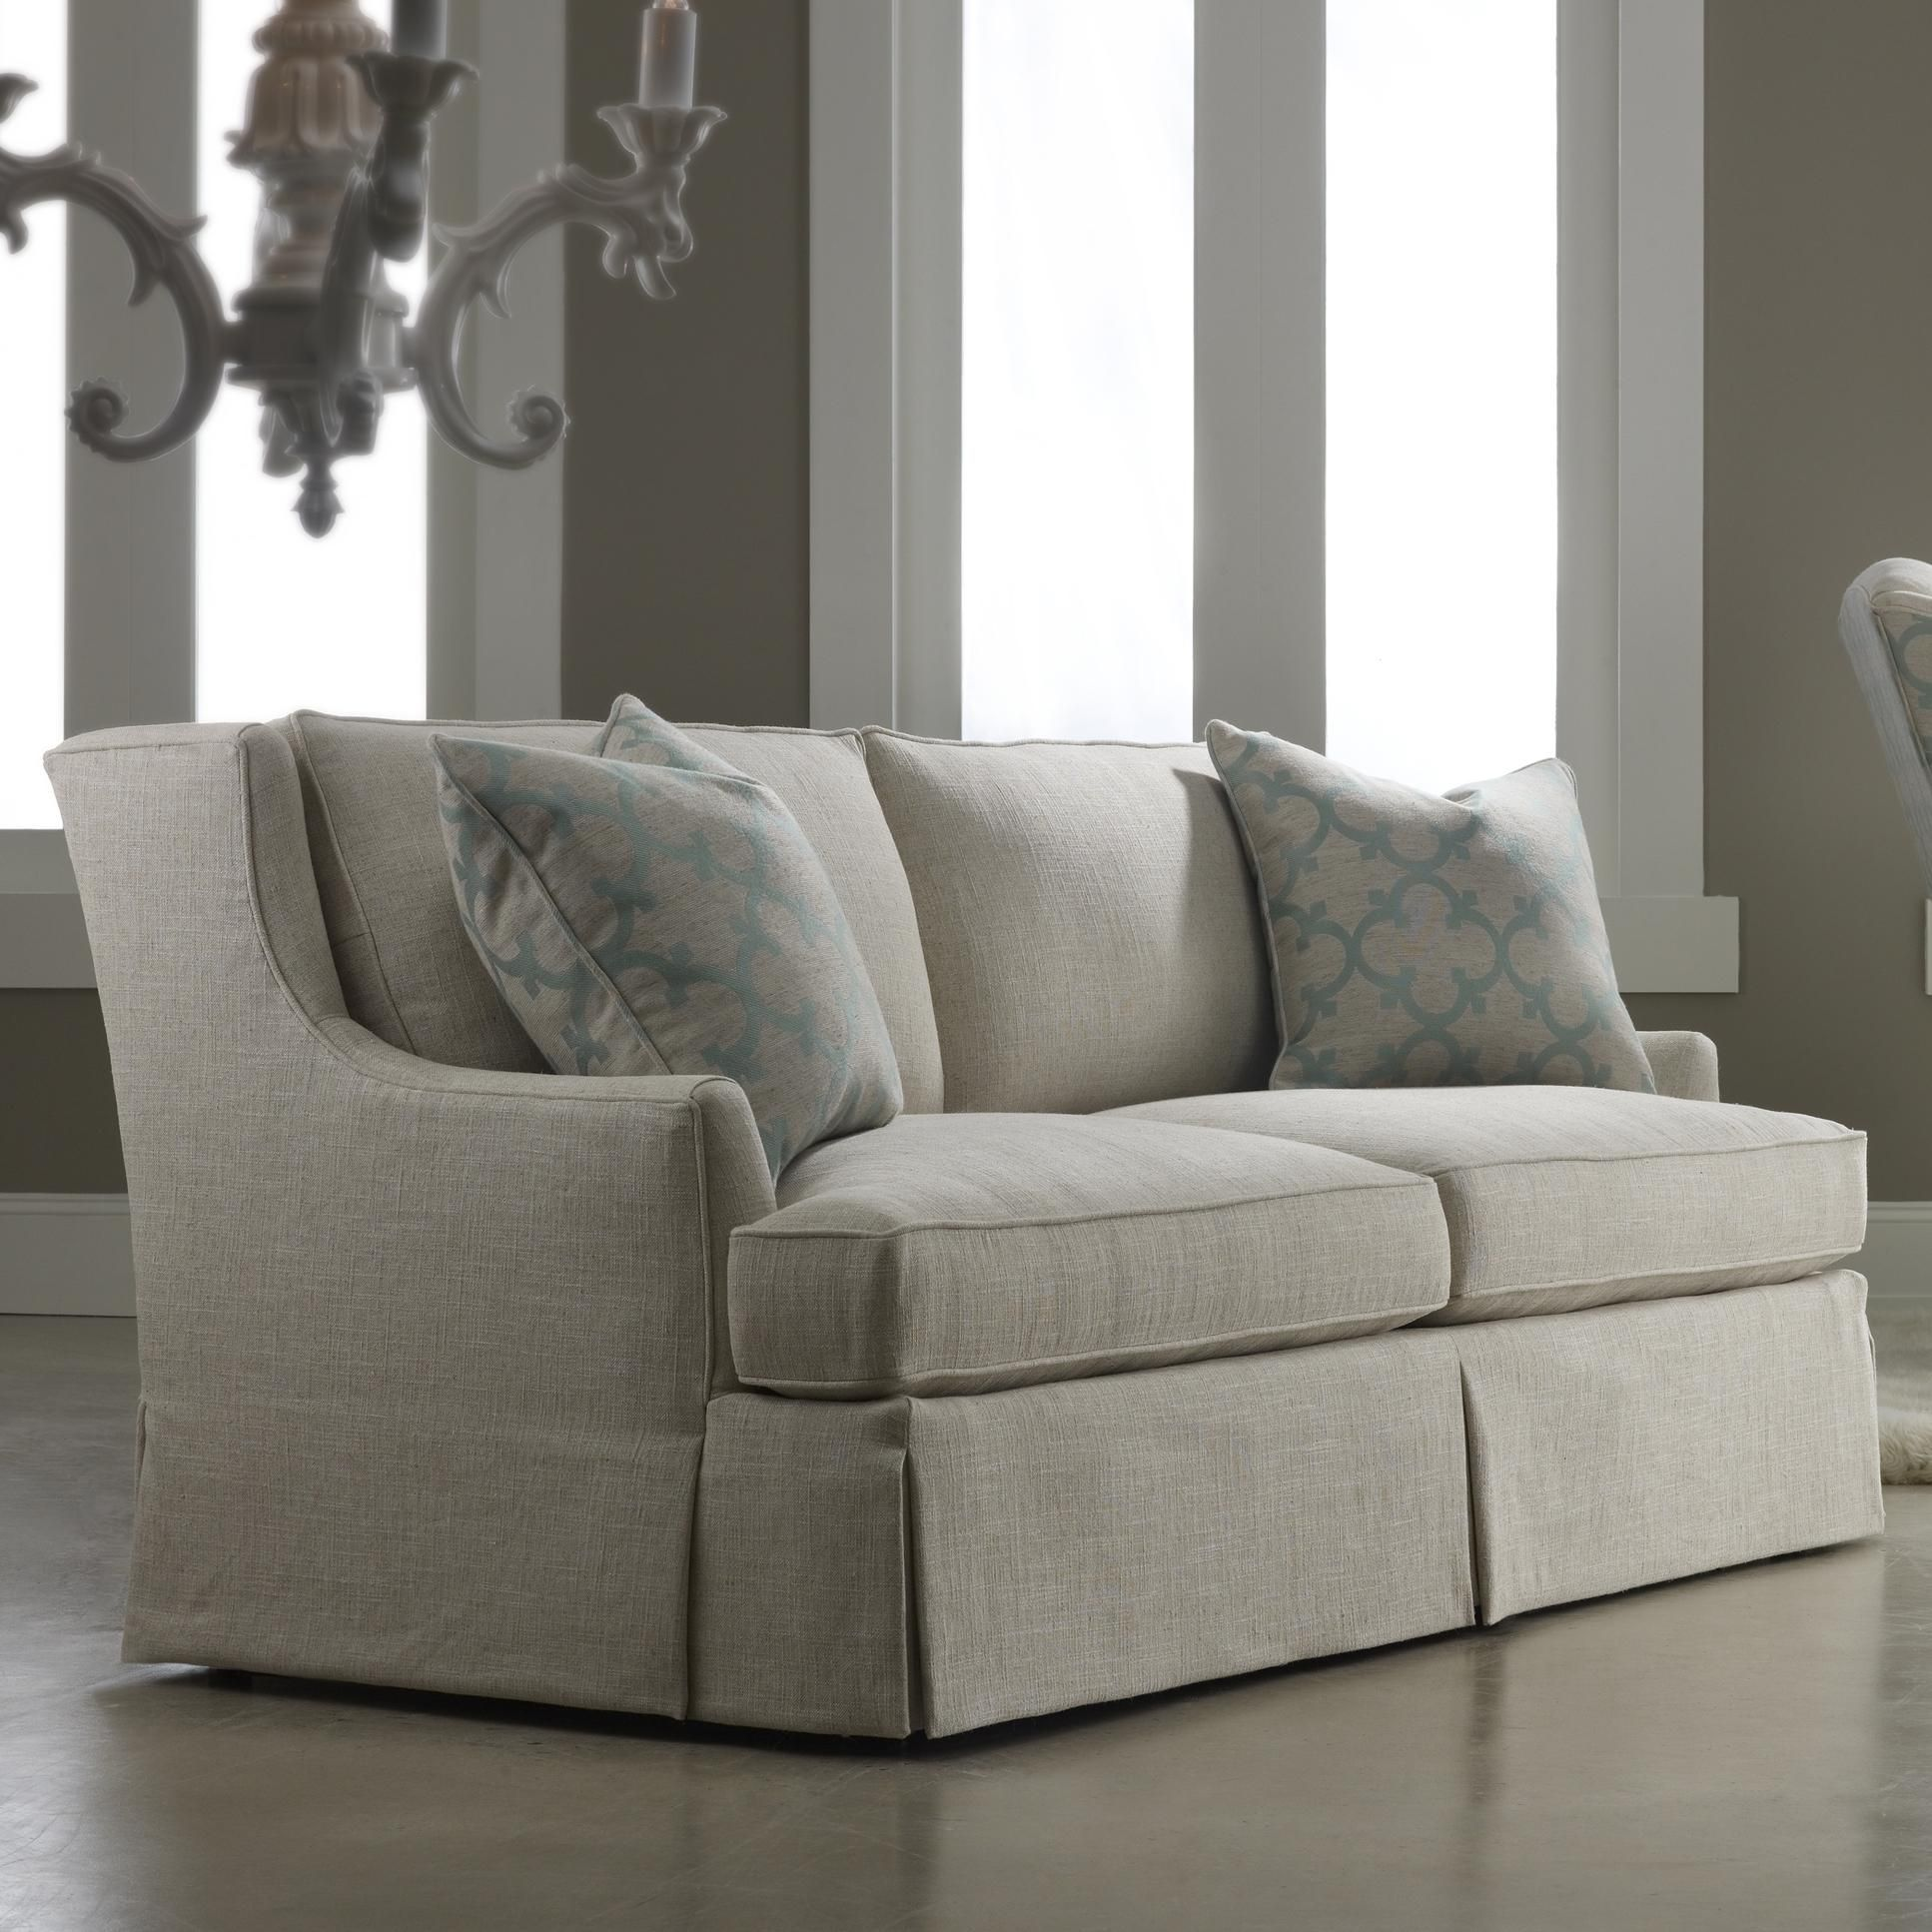 Sofa And Chair Print Blakely 2 Over By Sam Moore